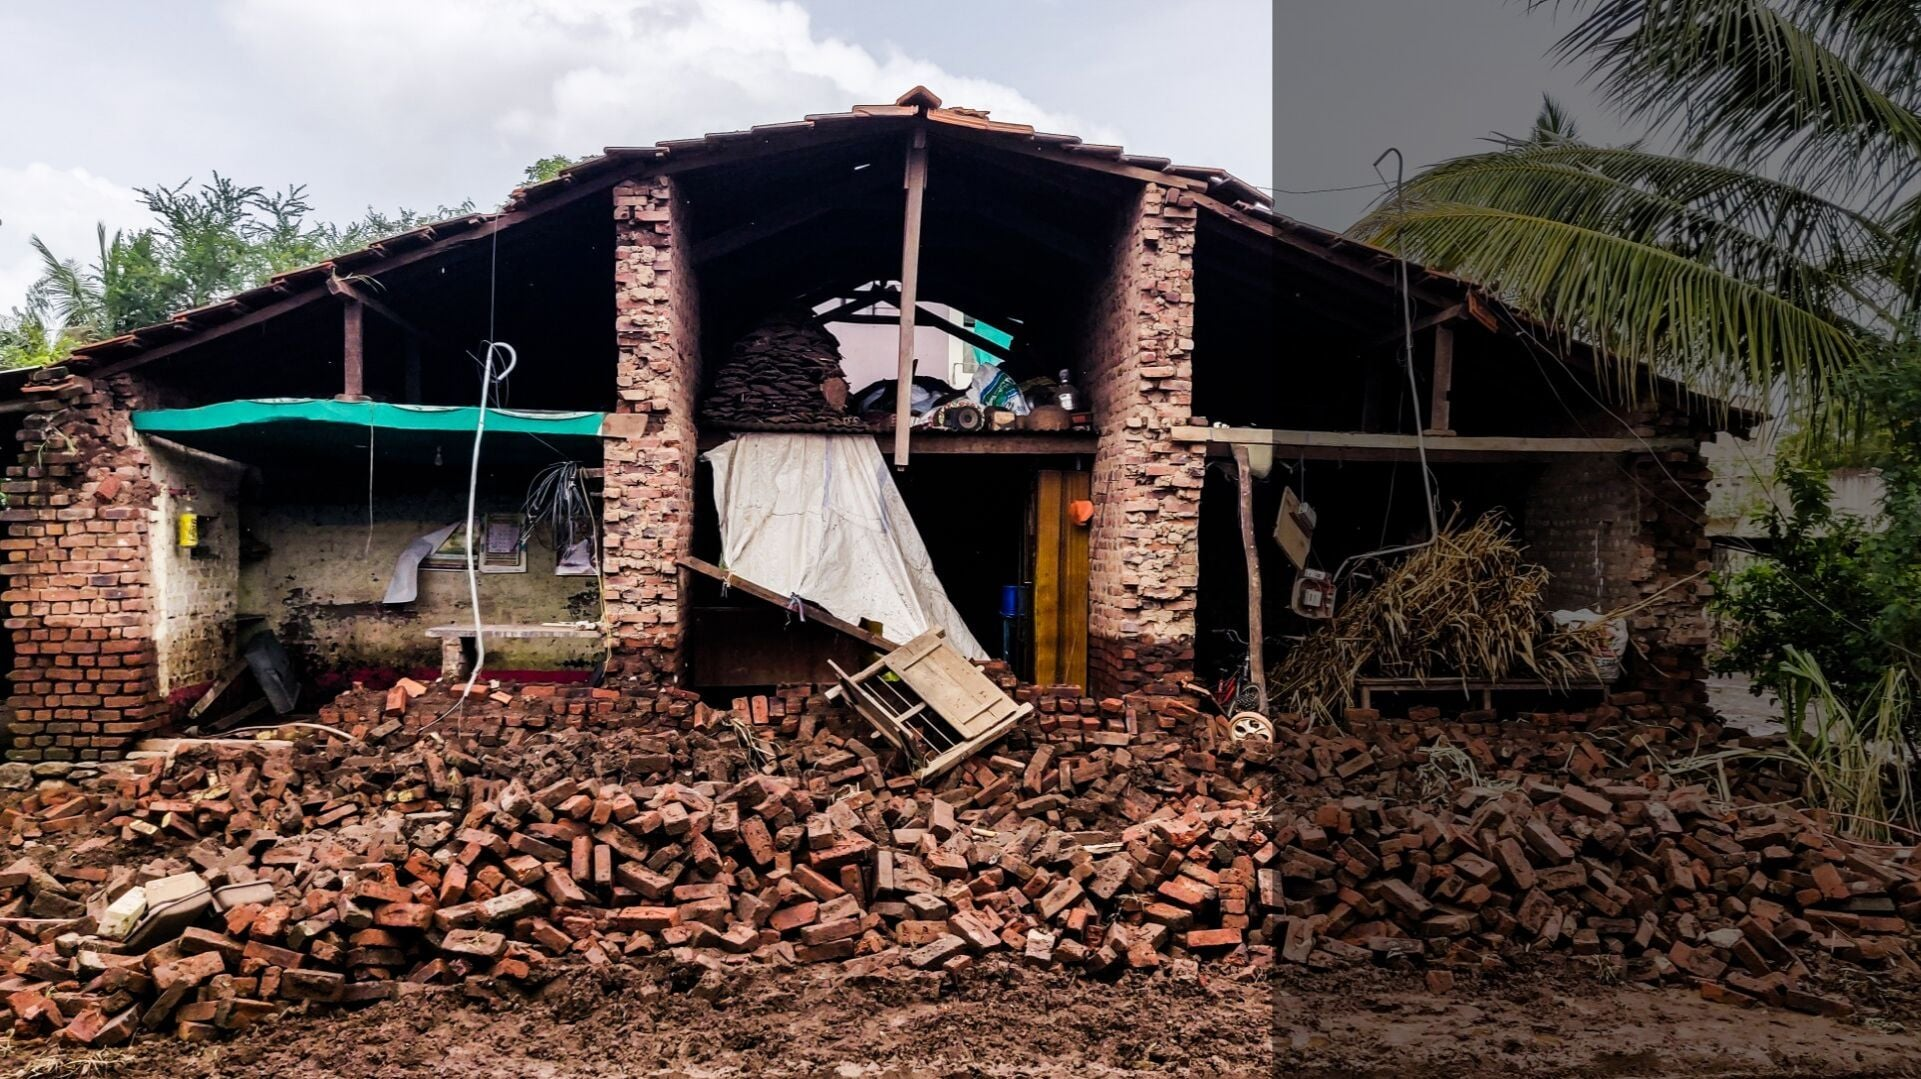 As Maharashtra floods yet again, residents of a village in Kolhapur gather what remains of their lives